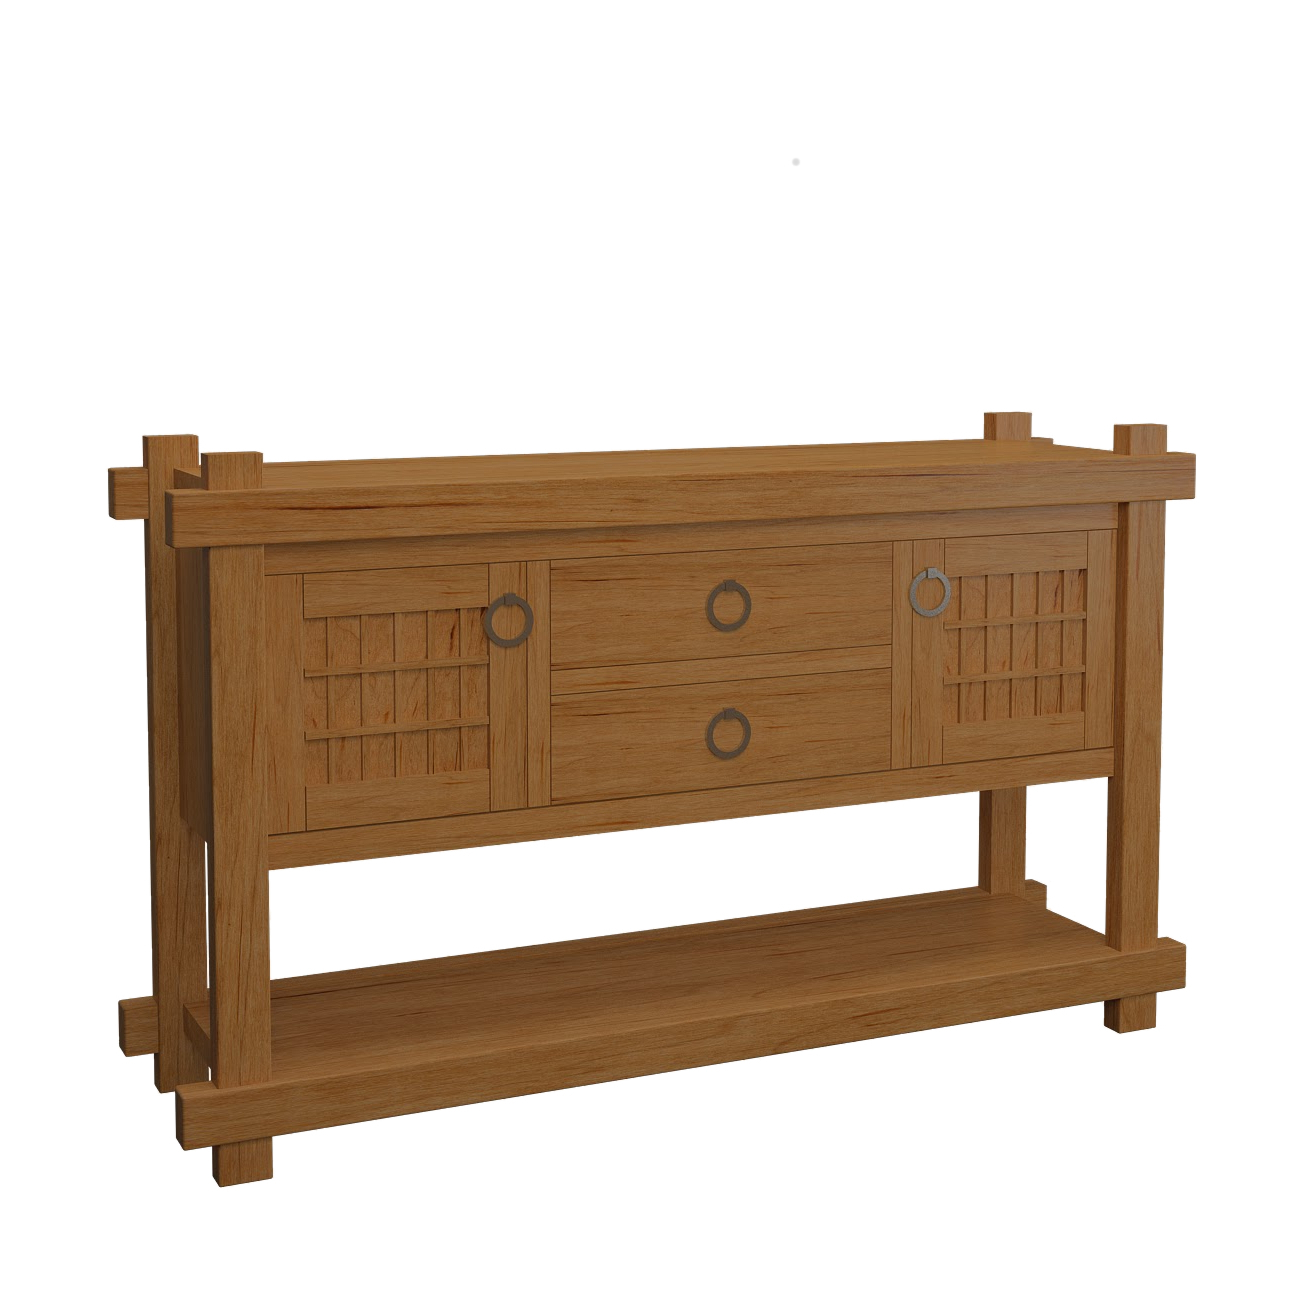 Sideboard In The Tansu Style (View 14 of 20)